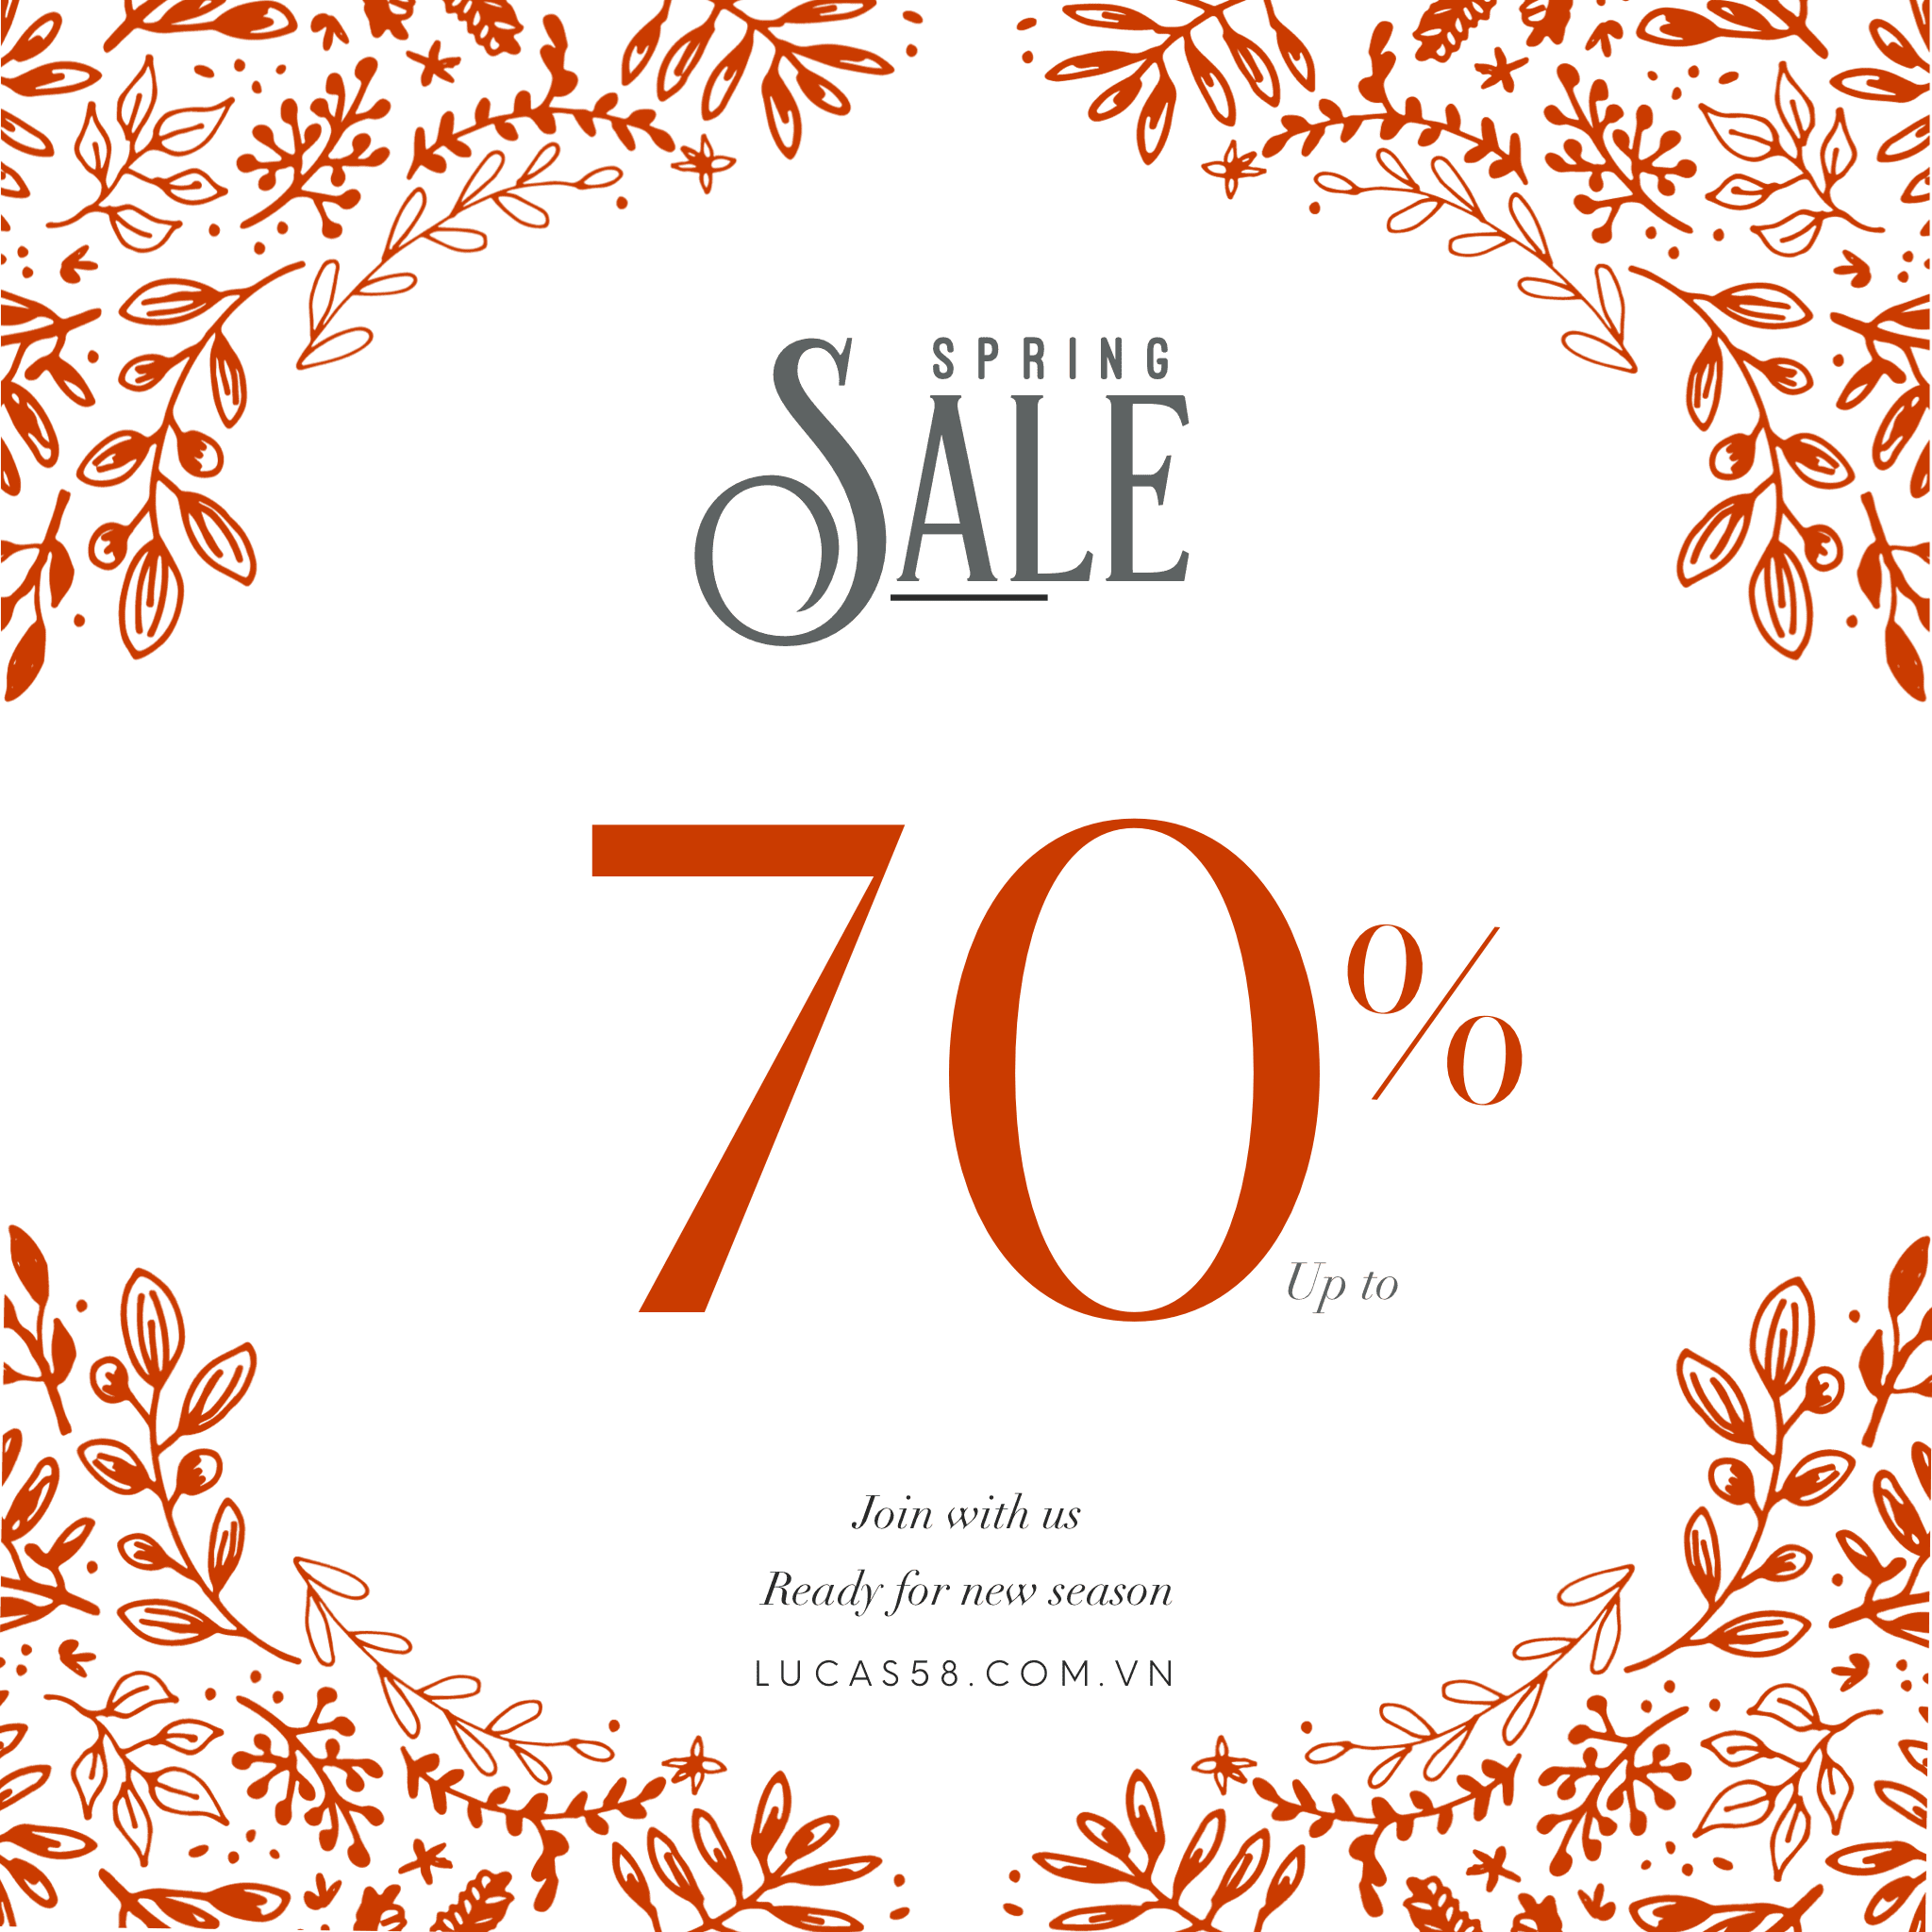 SPRING SALE | 70% UP TO